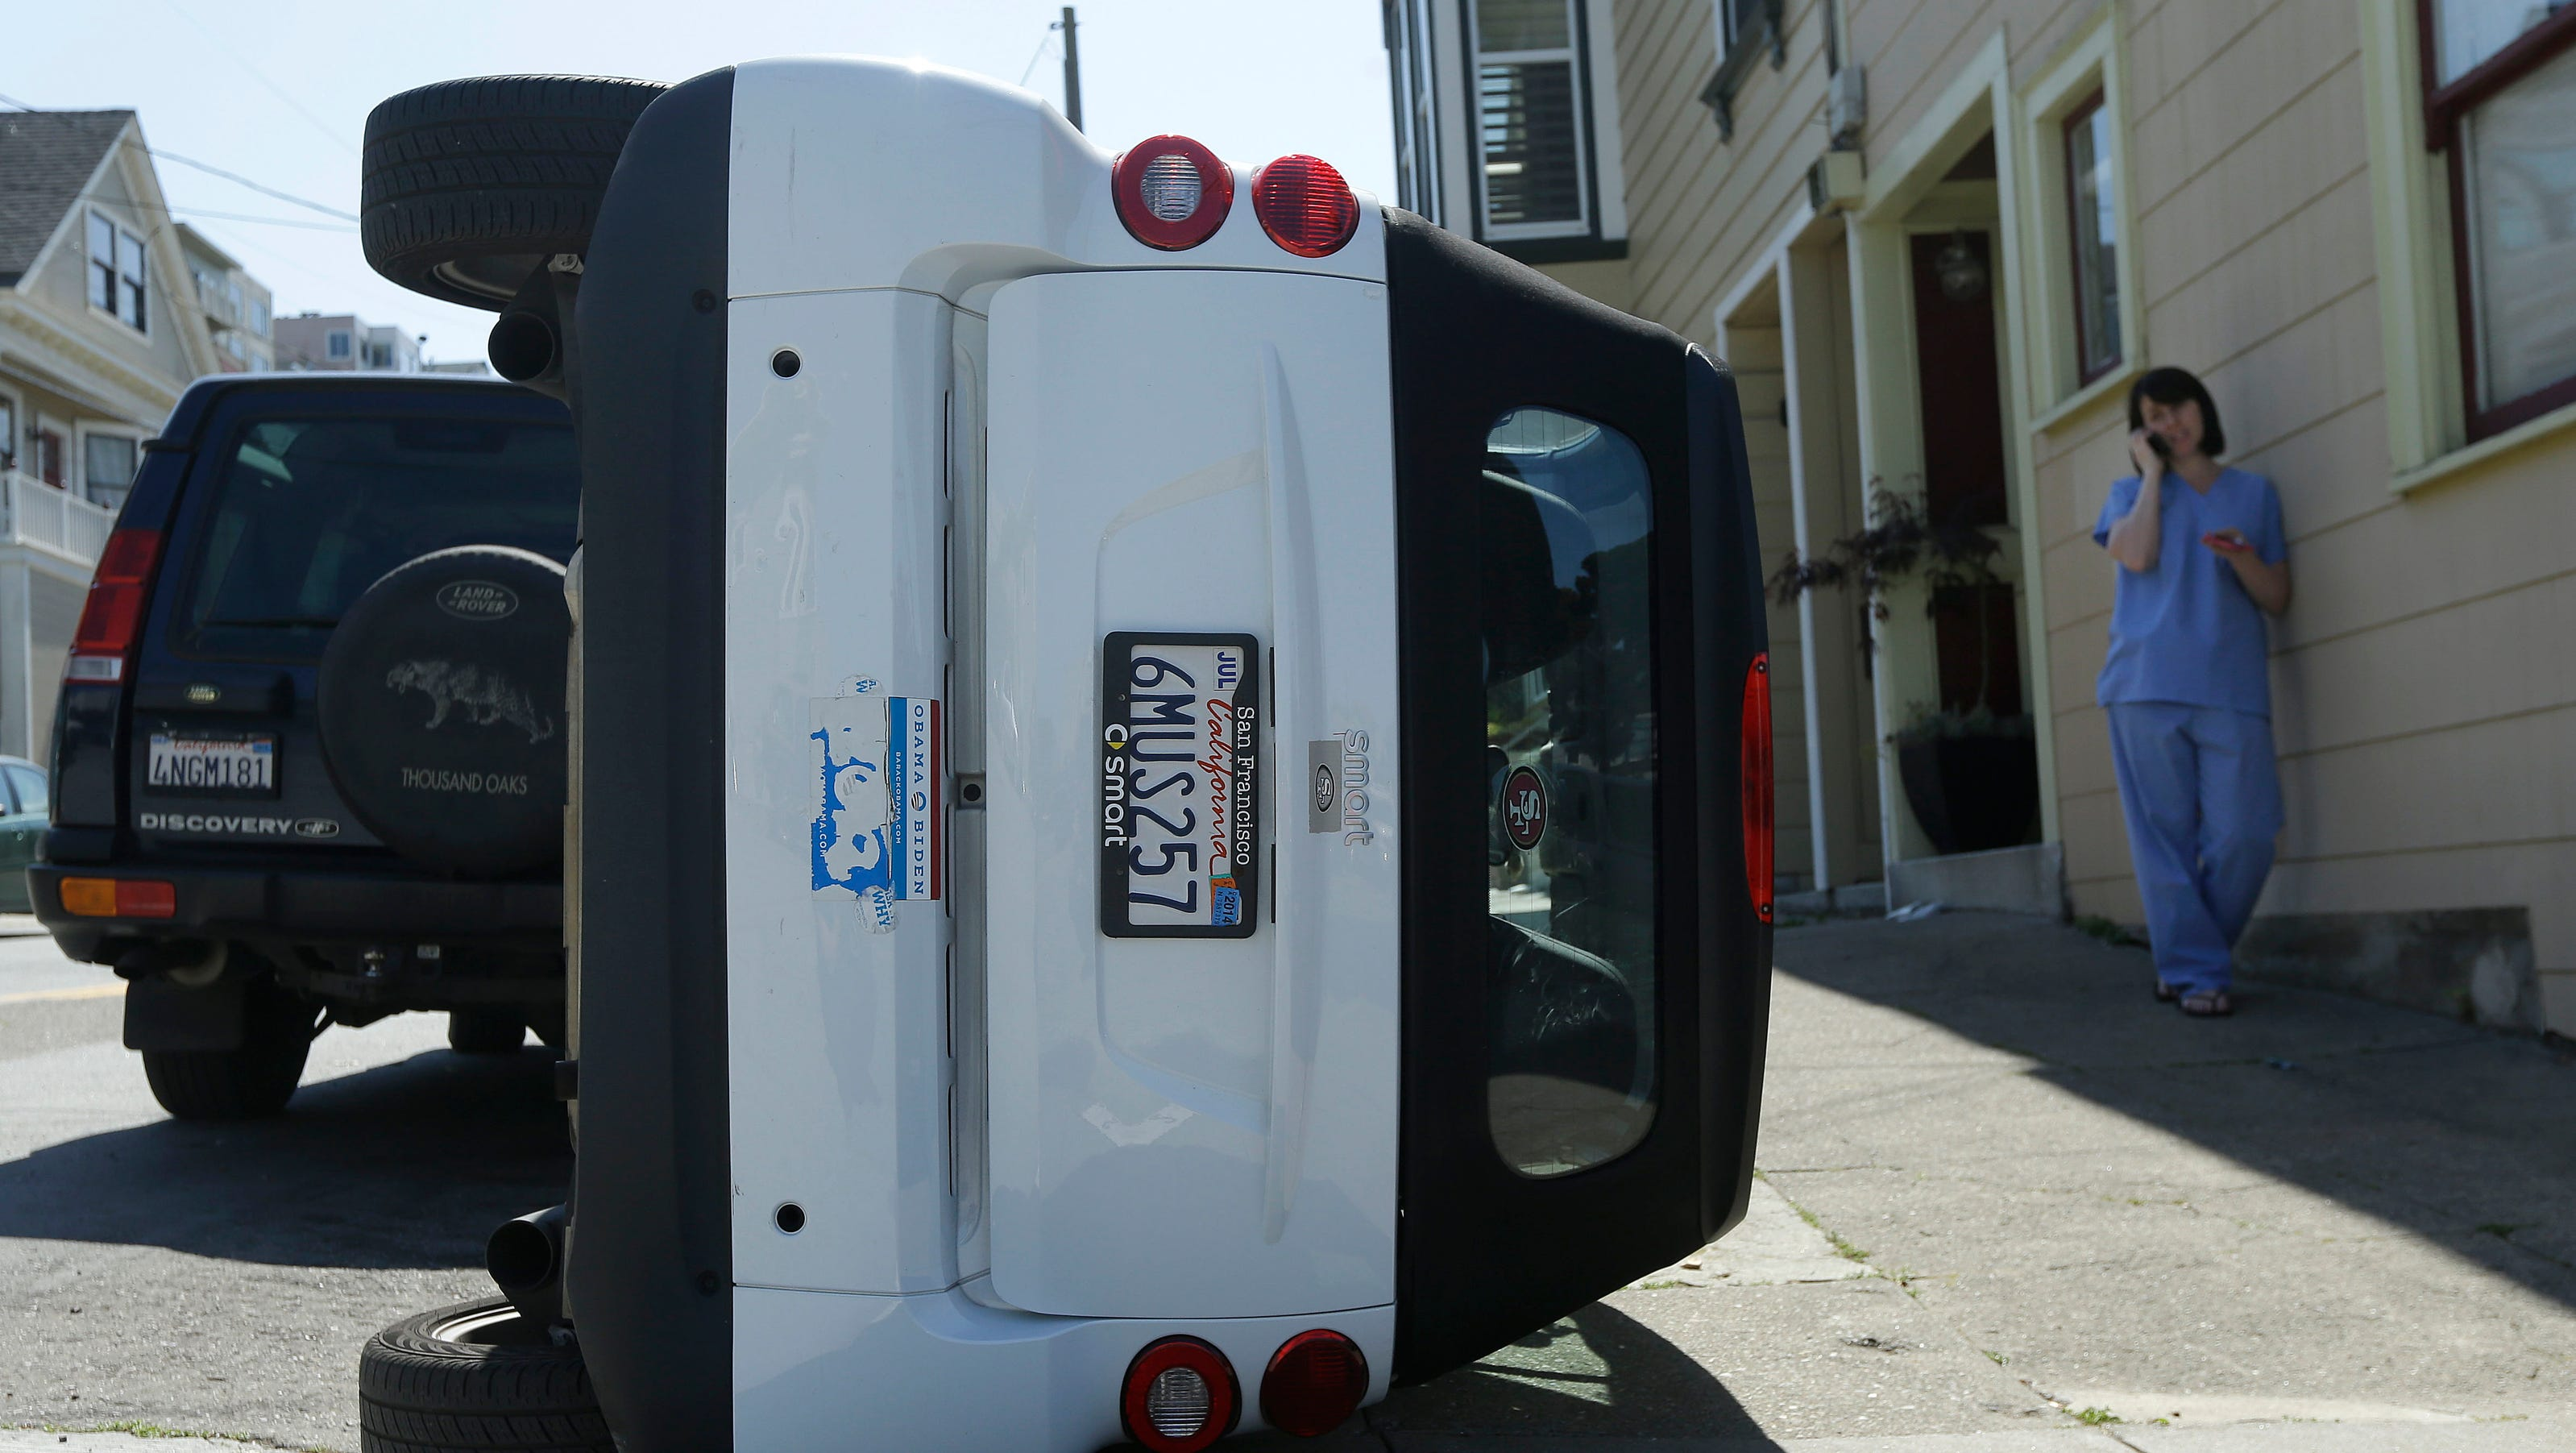 Urban Cow Tipping Vandals Turn Over Smart Cars In San